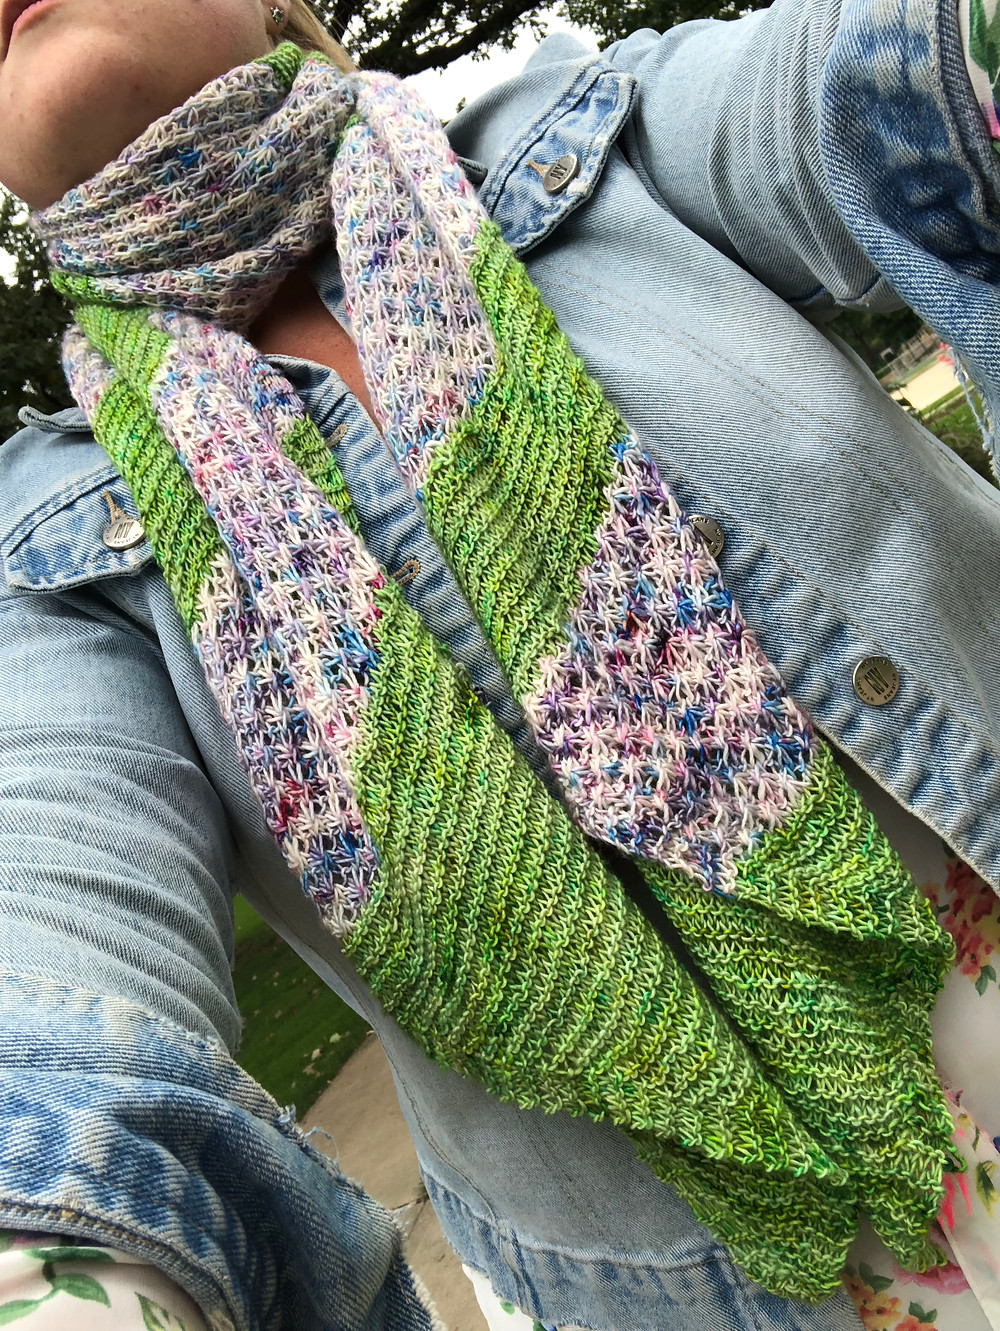 The English Garden Wrap knitting pattern is now available  for purchase!